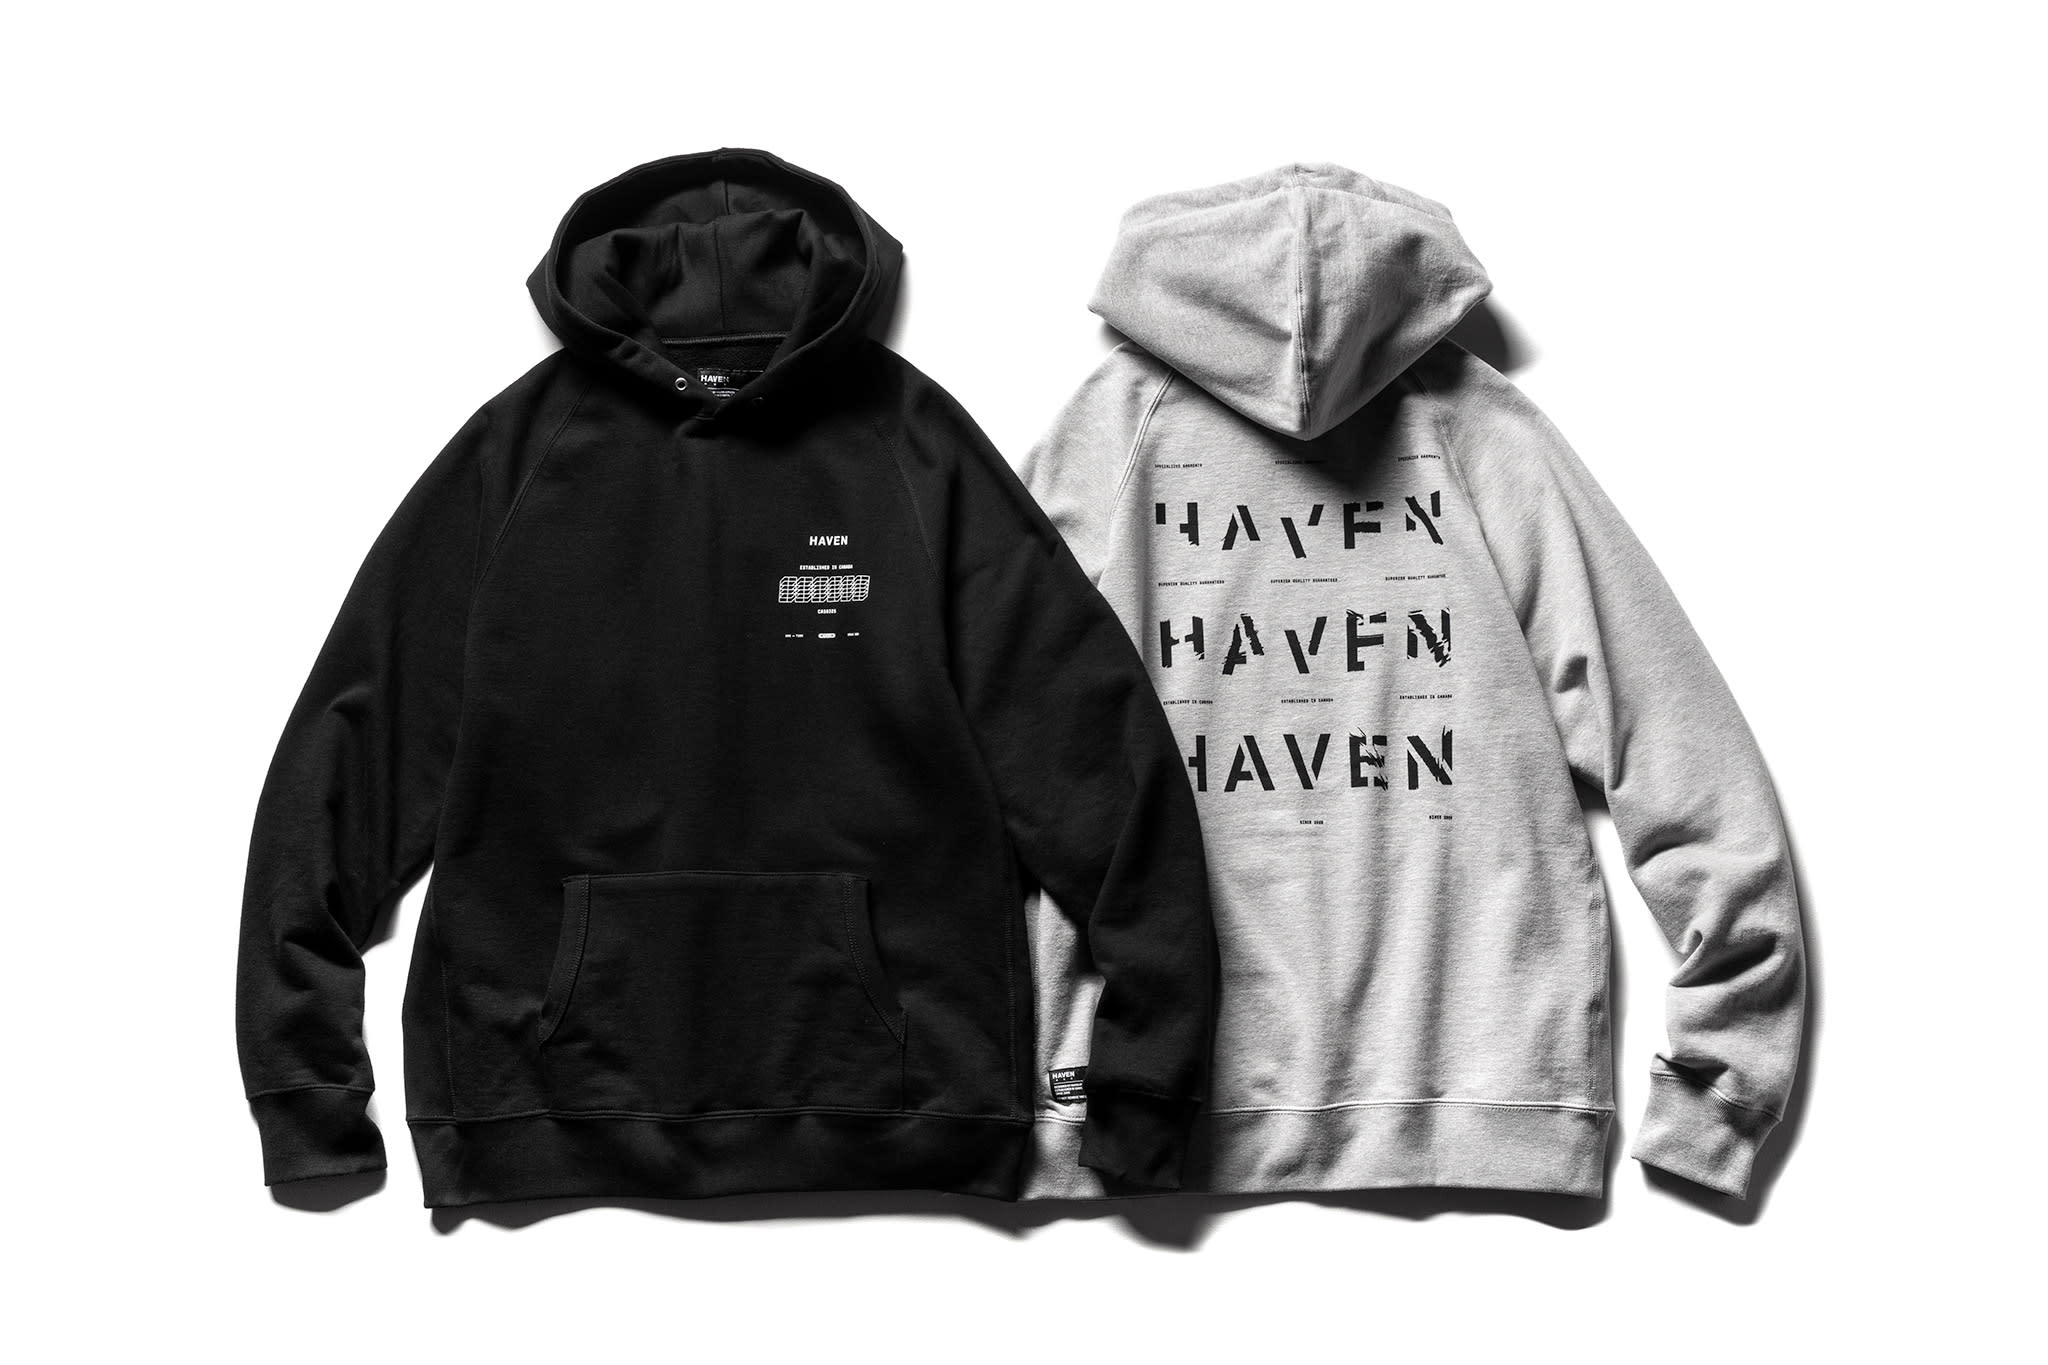 HAVEN SS20 DELIVERY 3 NEW ARRIVALS